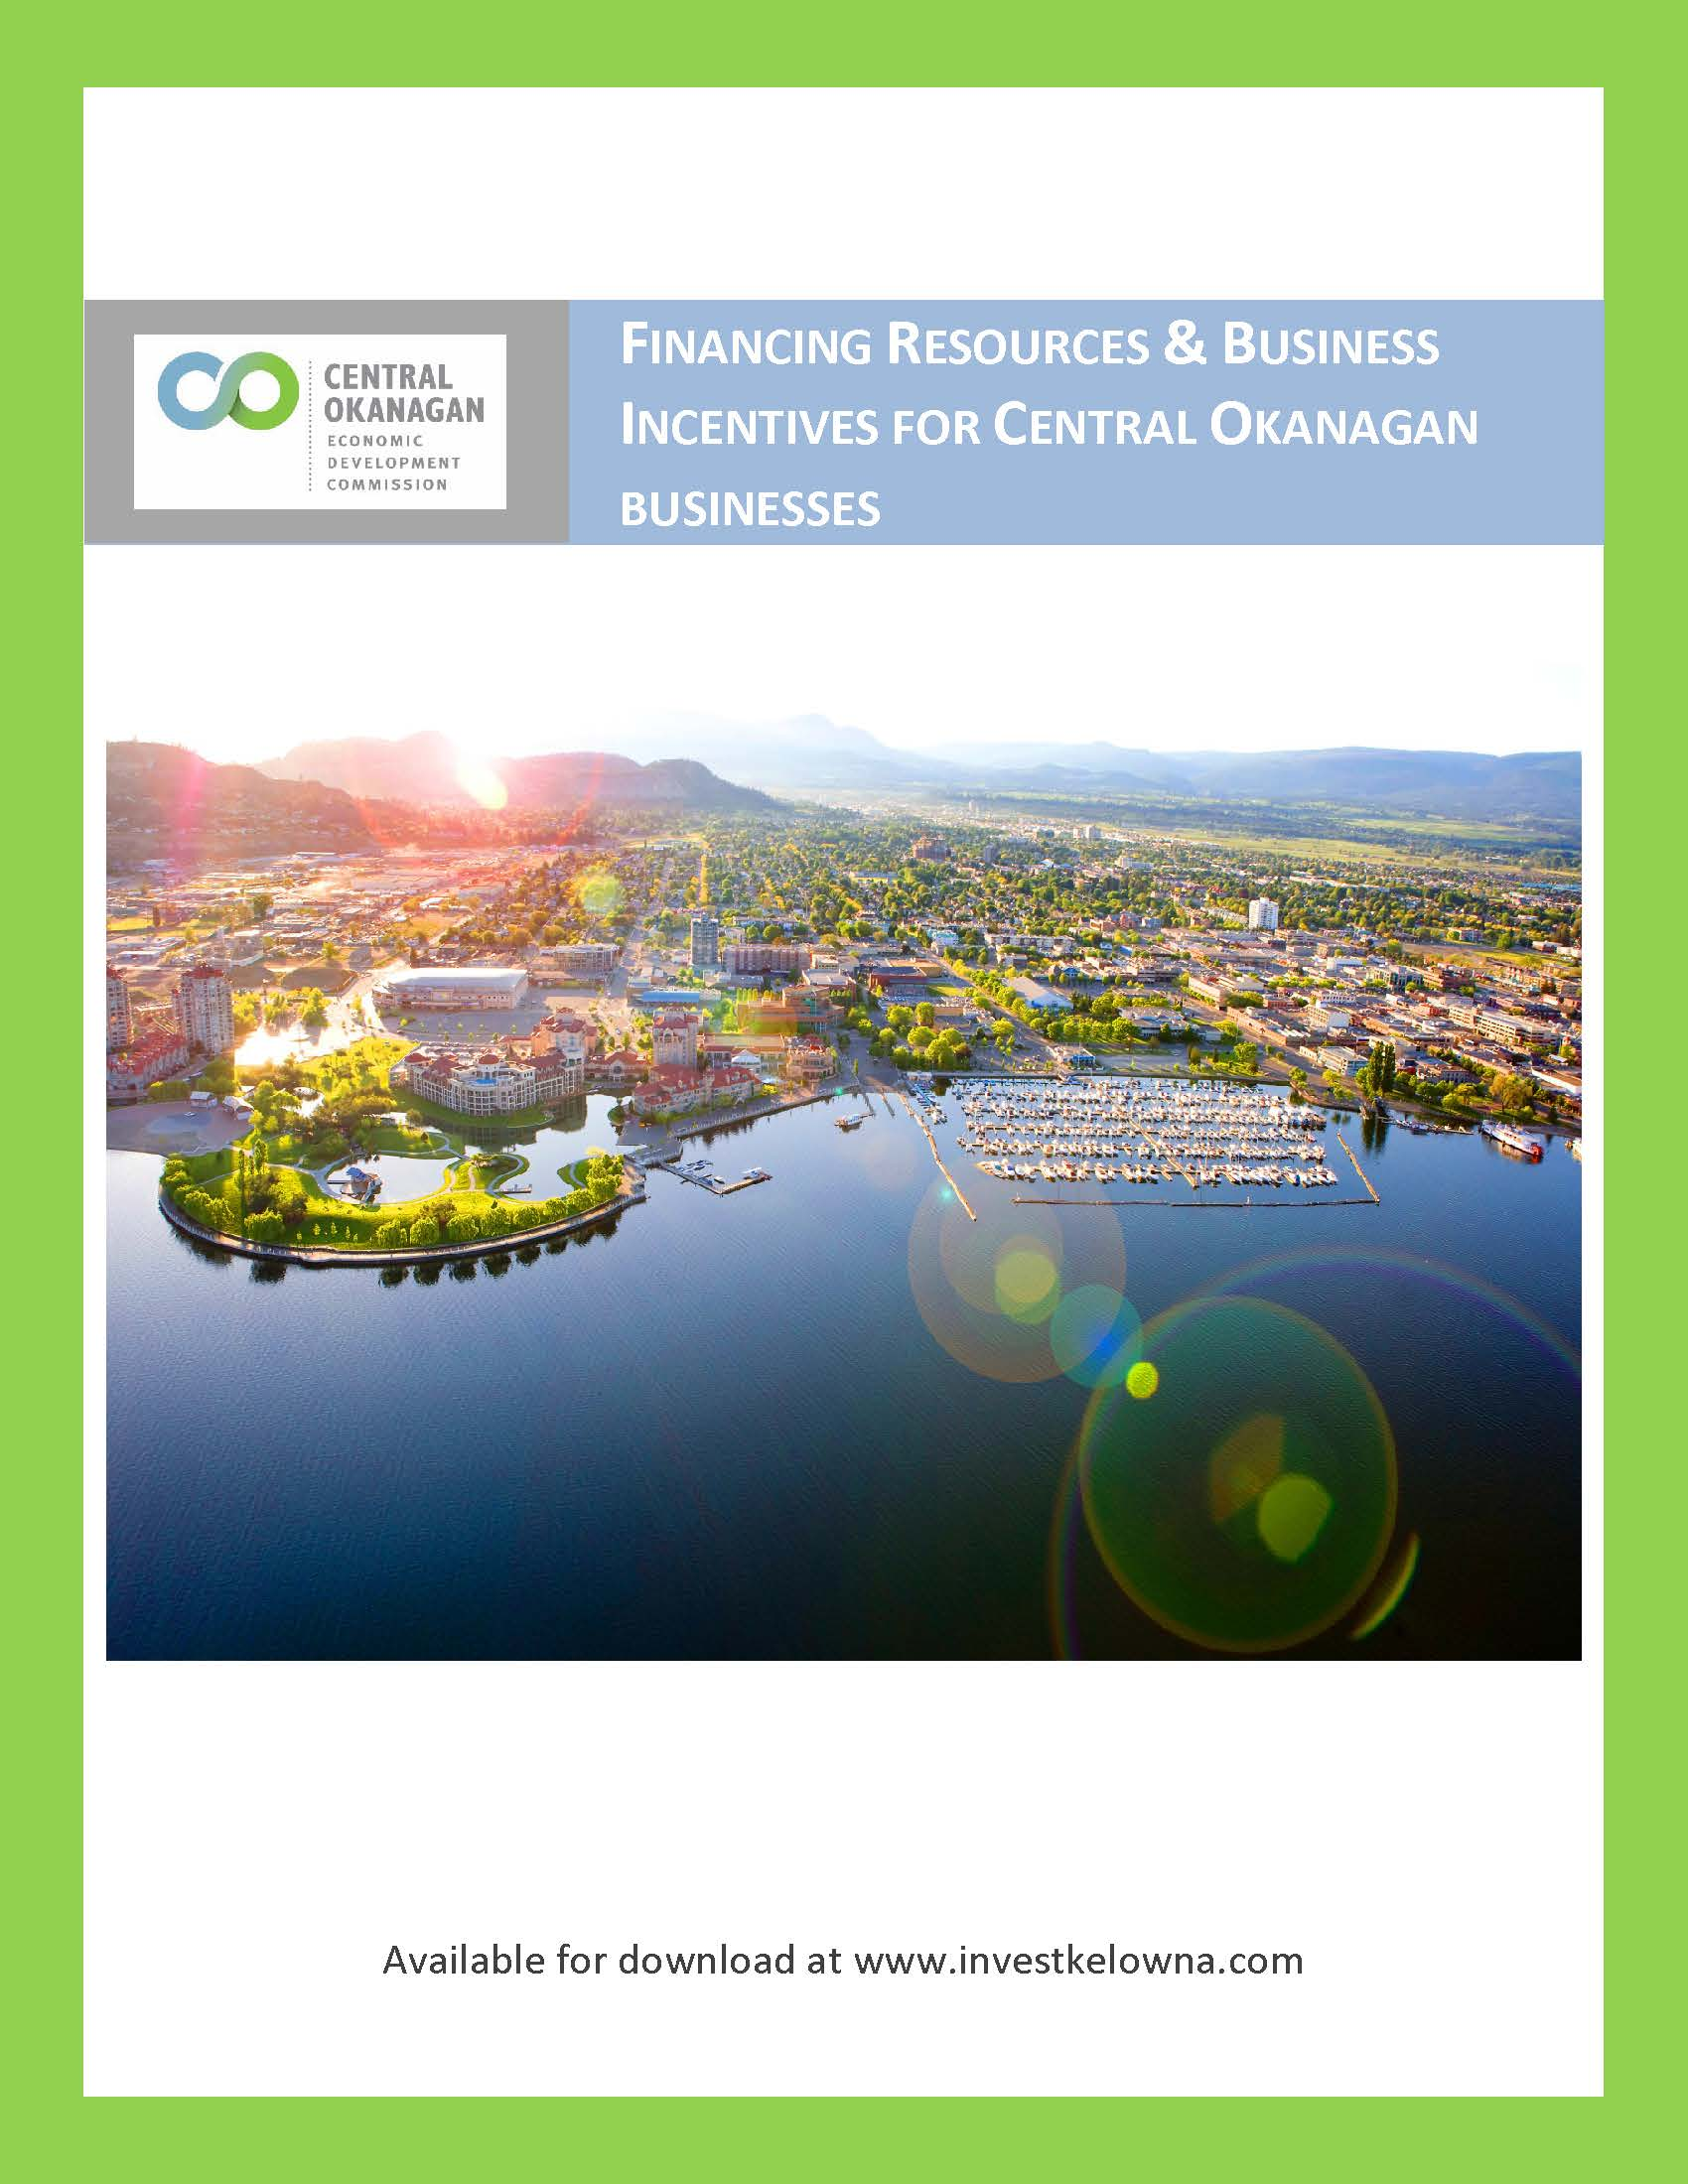 FinancingResources_COBusinessess_ CoverPage.jpg